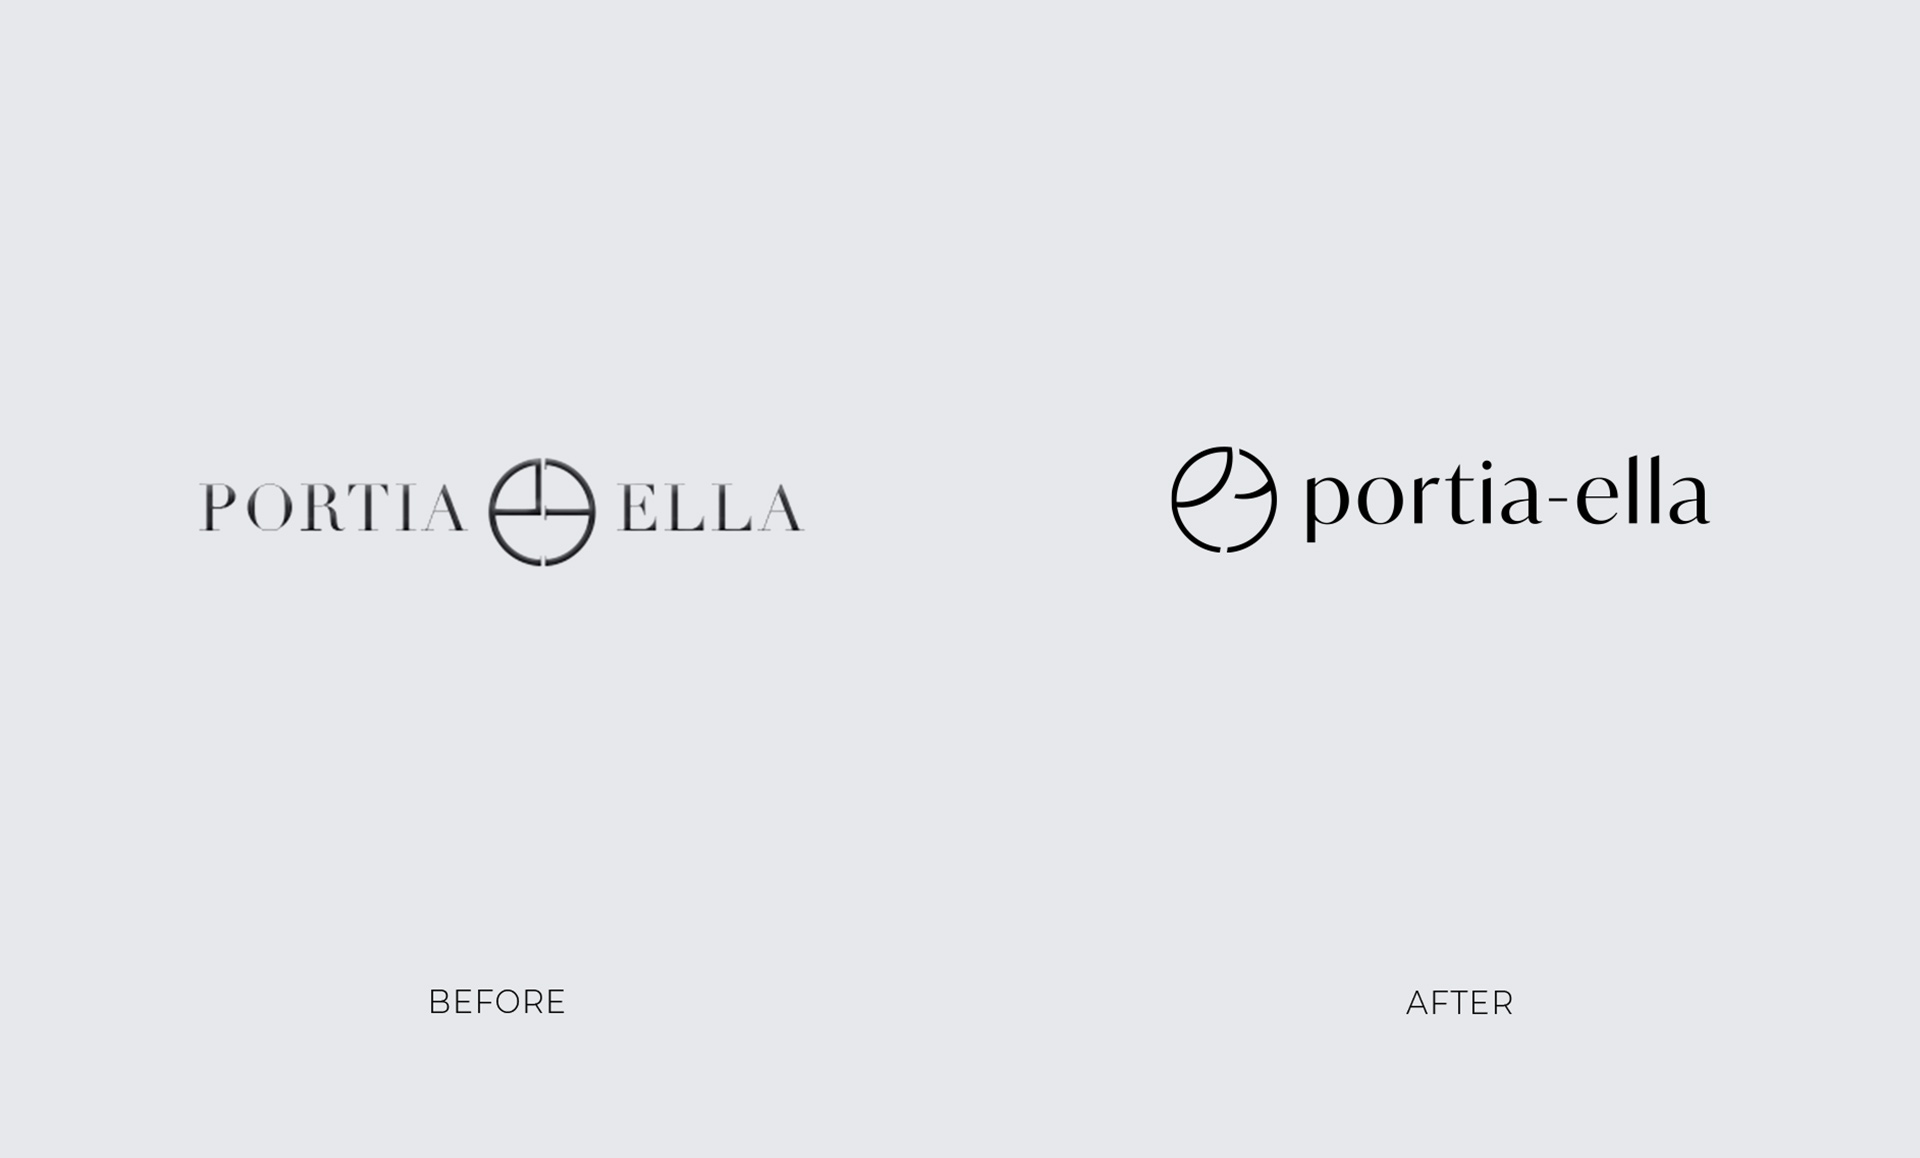 retail marketing portia ella logo redesign